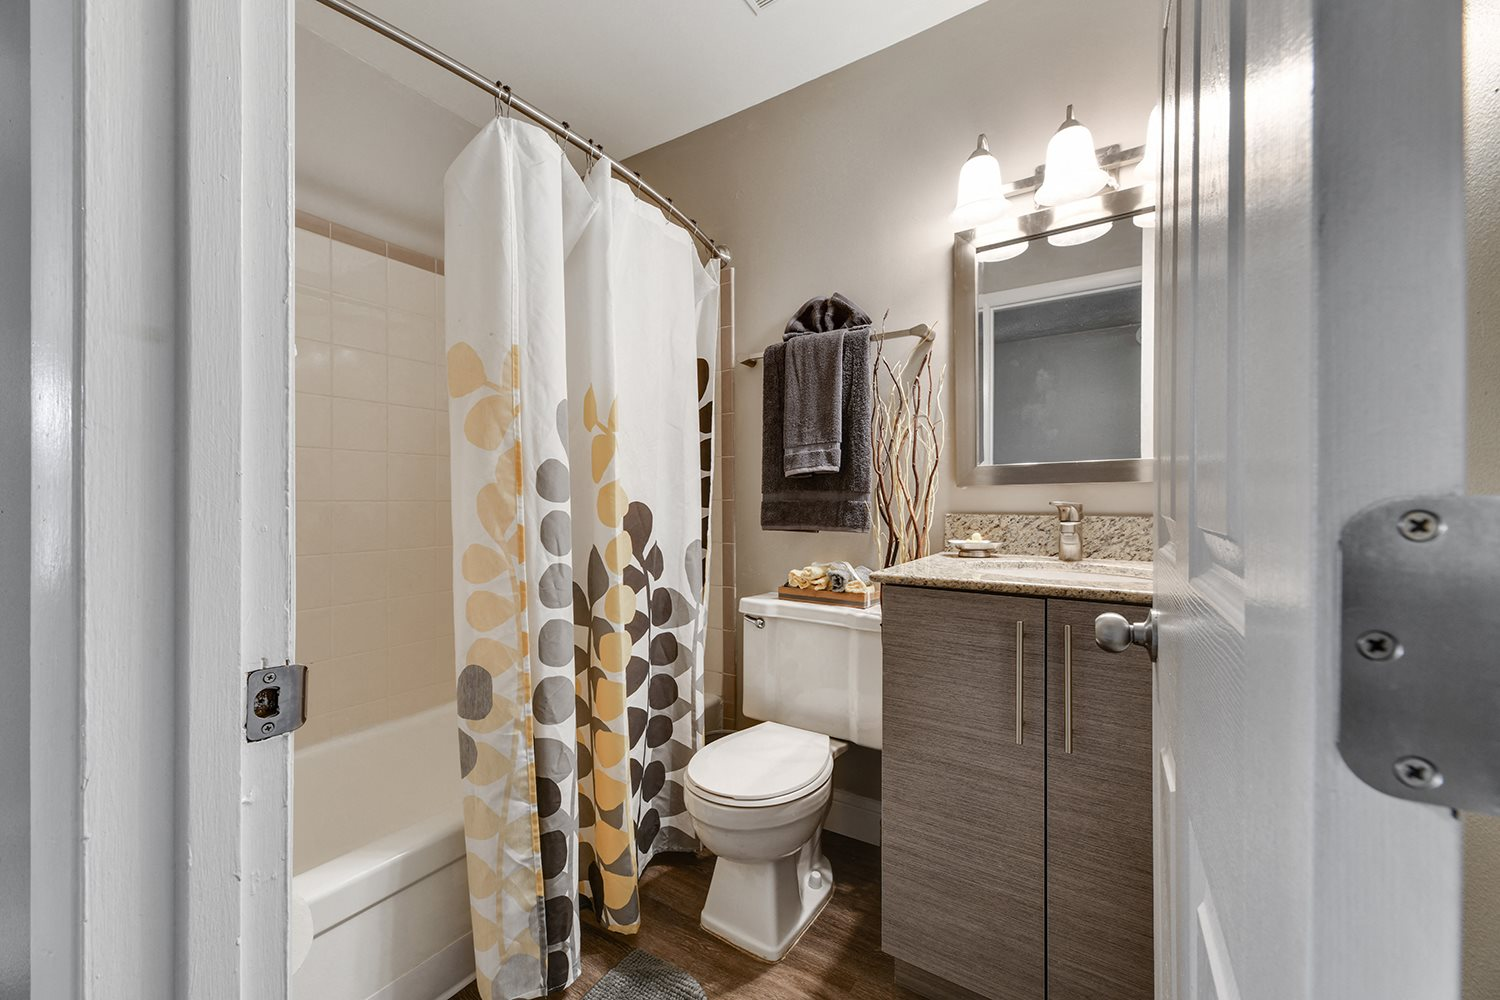 Designer Granite Countertops In All Bathrooms at Heritage Hill Estates Apartments, Ohio, 45227